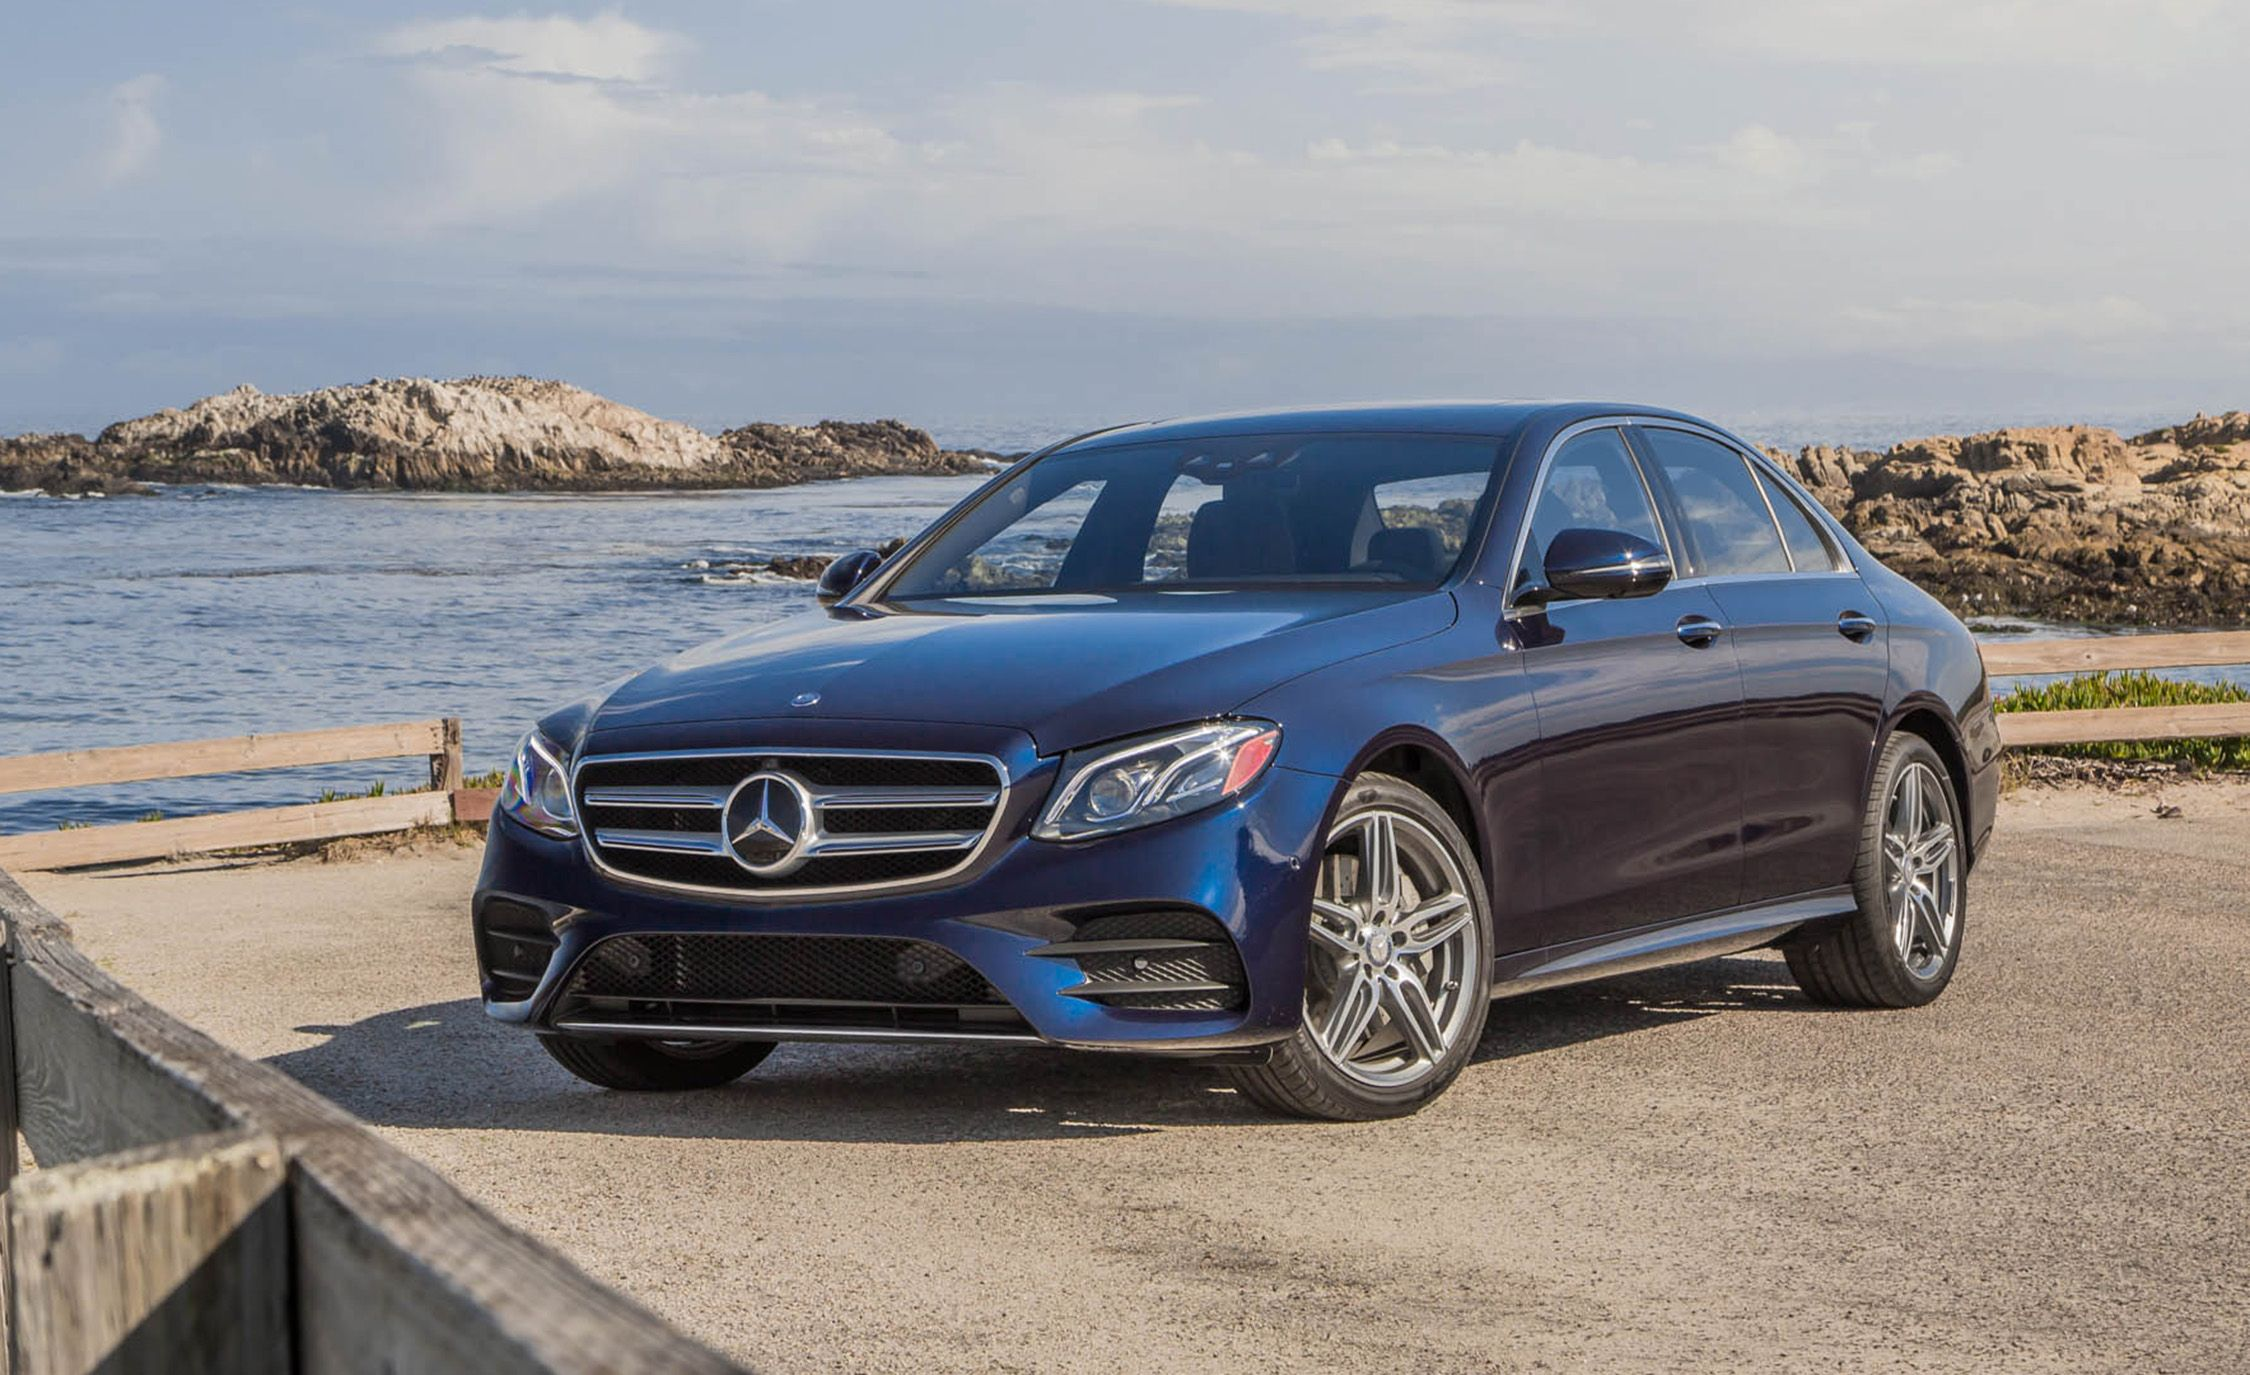 Comments on: The 2020 Mercedes-Benz E-Class Is Getting a